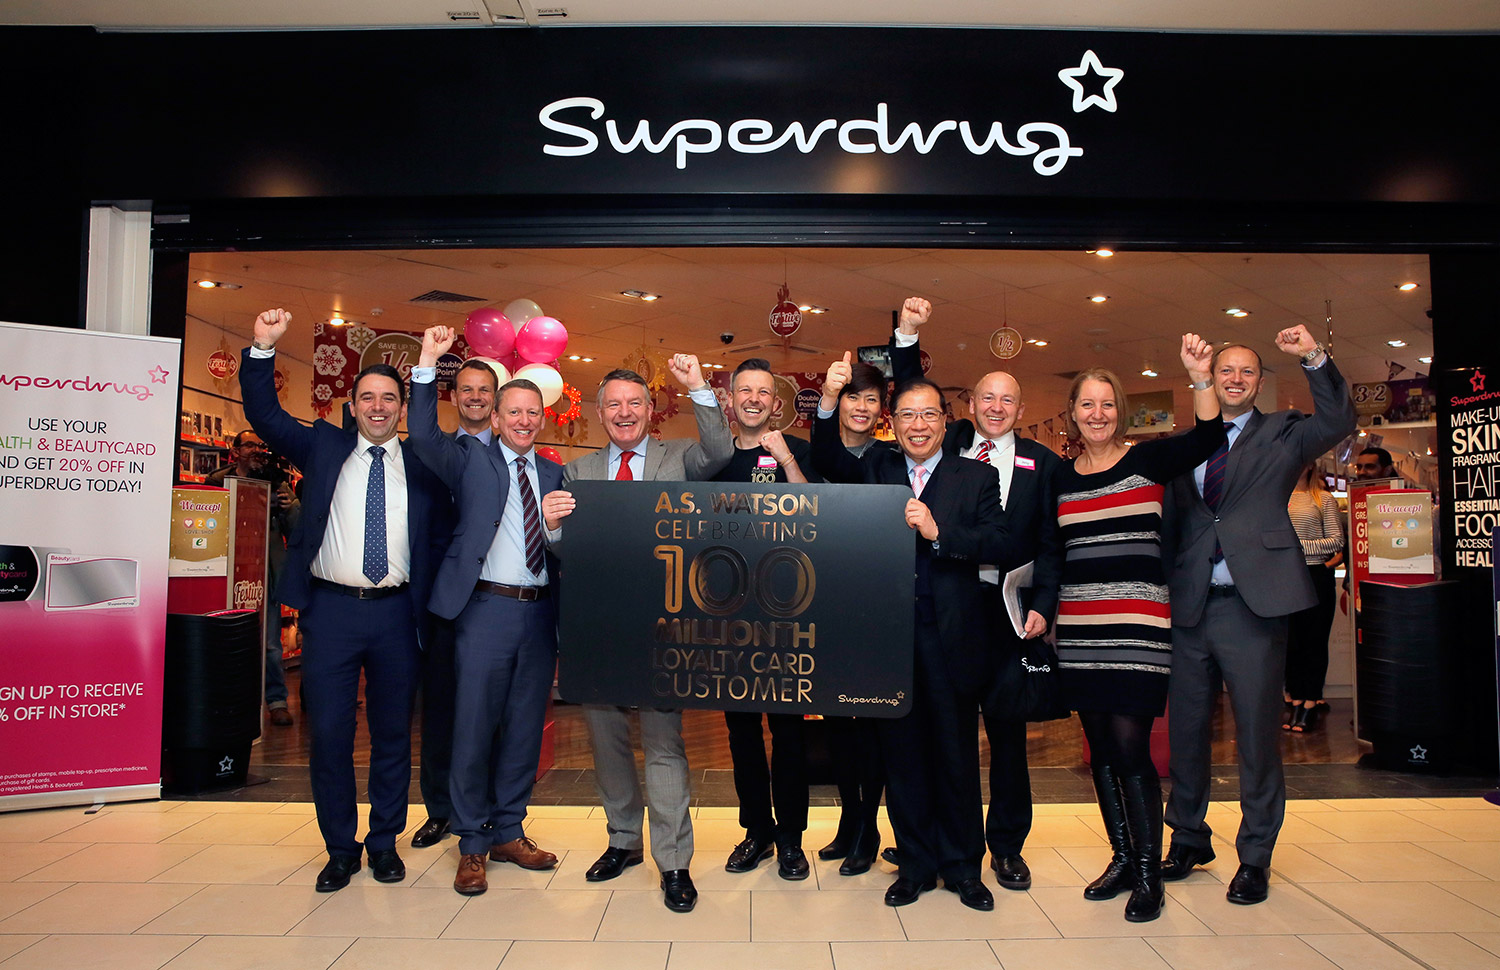 Dominic Lai, Managing Director of A.S. Watson Group(4th from left), Malina Ngai, Chief Operations Officer of A.S. Watson Group(5th from left), Peter Macnab, Superdrug Managing Director (4th from right) and management team jointly host ASW 100 Millionth loyalty club member celebration at Superdrug's Lakeside store